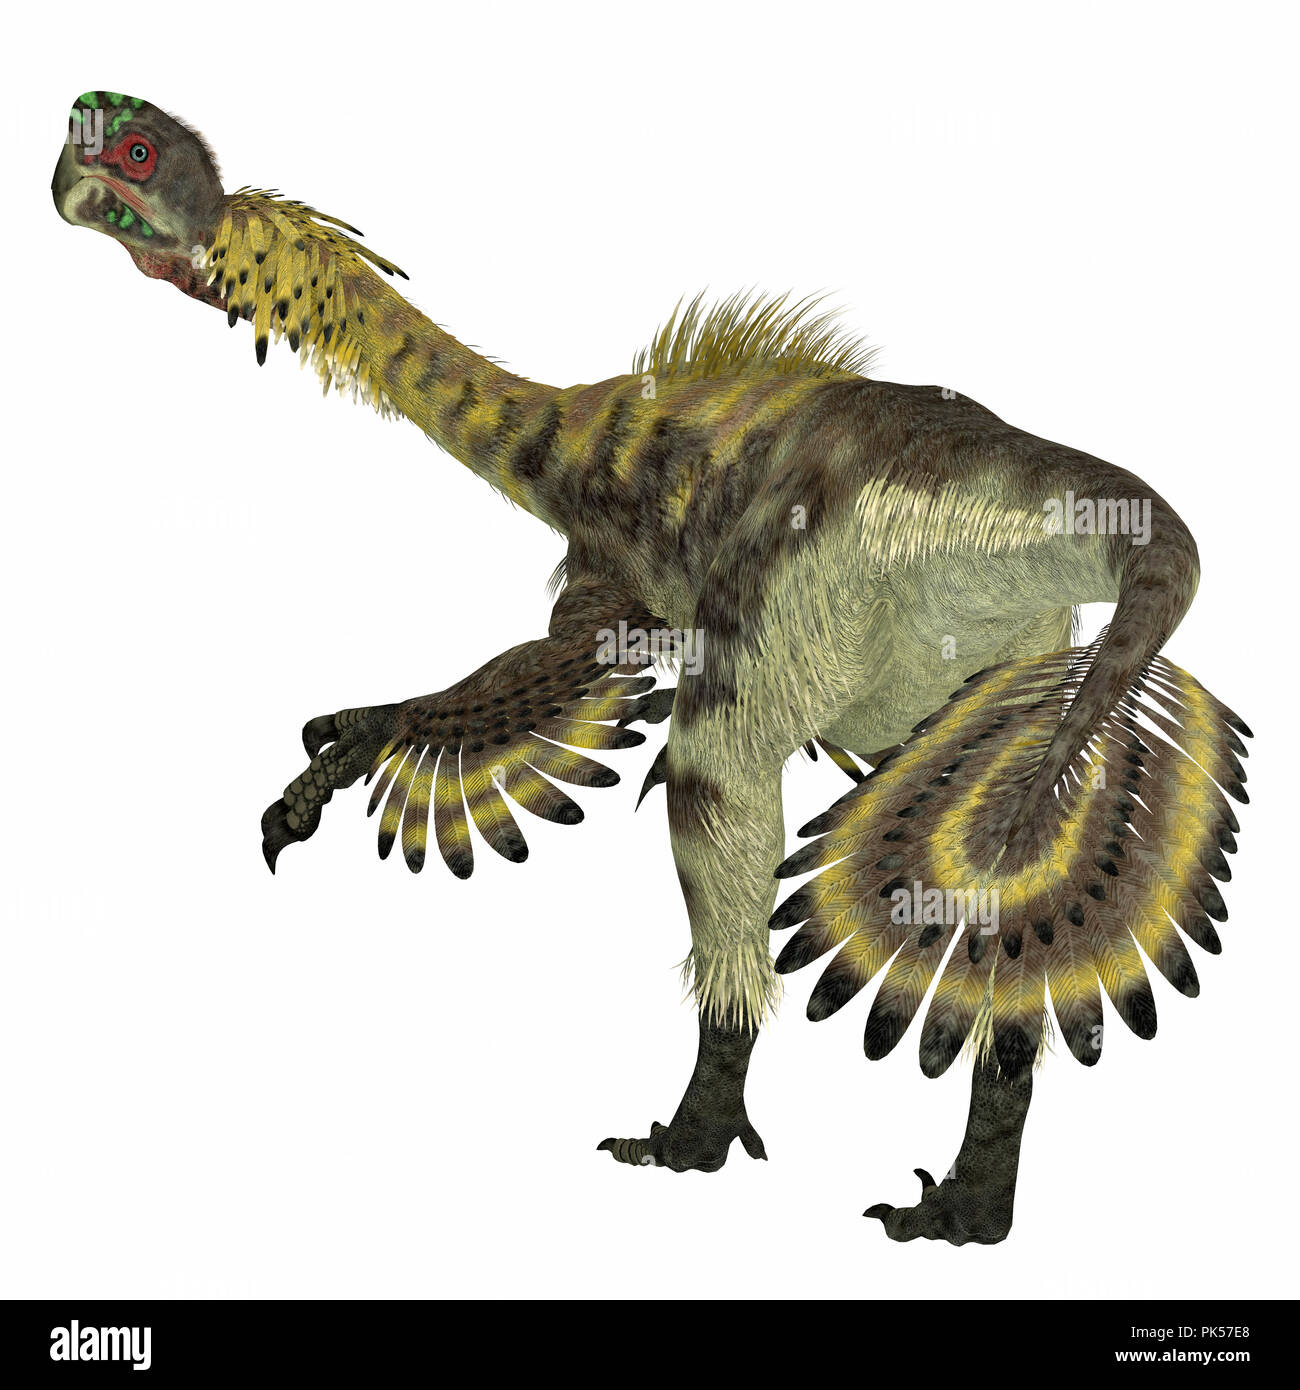 Citipati Dinosaur Tail - Citipati was a carnivorous Velociraptor dinosaur that lived in Mongolia during the Cretaceous Period. - Stock Image